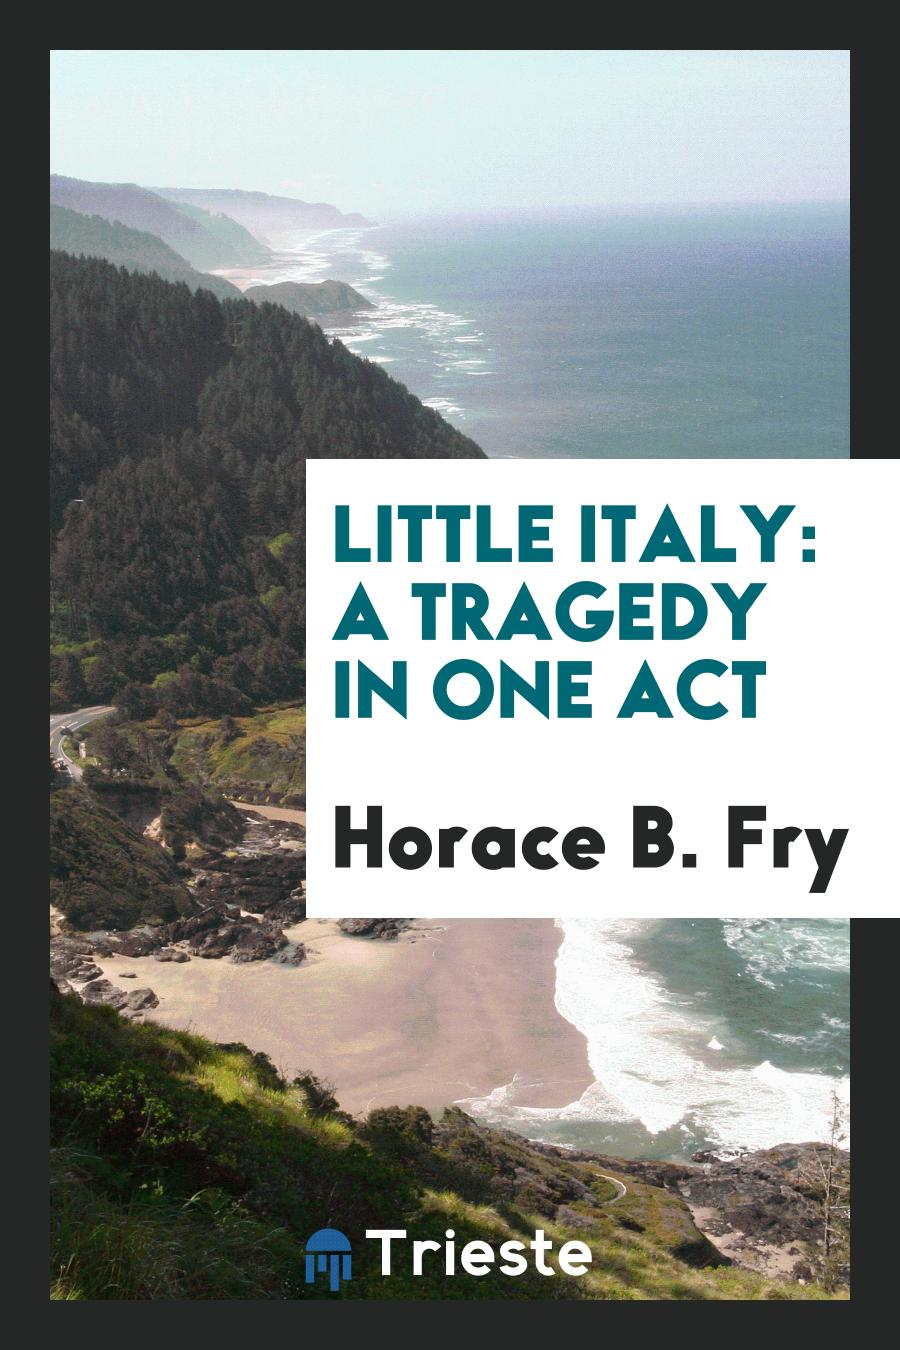 Horace B. Fry - Little Italy: A Tragedy in One Act